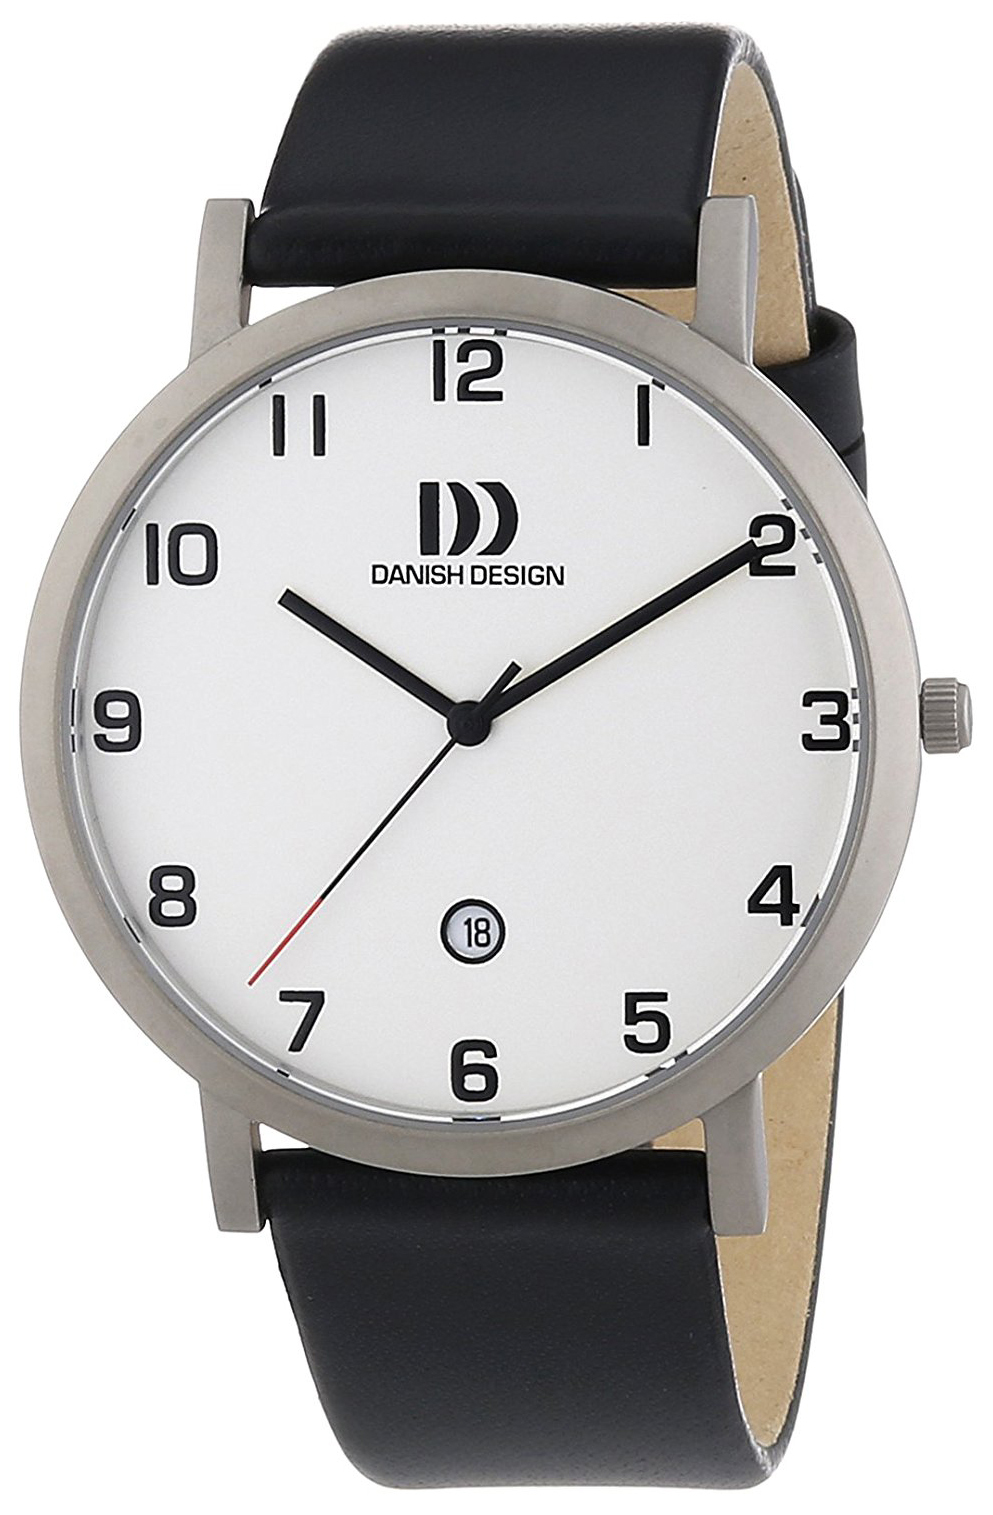 Danish Design Classic Herreklokke 3316328 Hvit/Lær Ø40 mm - Danish Design